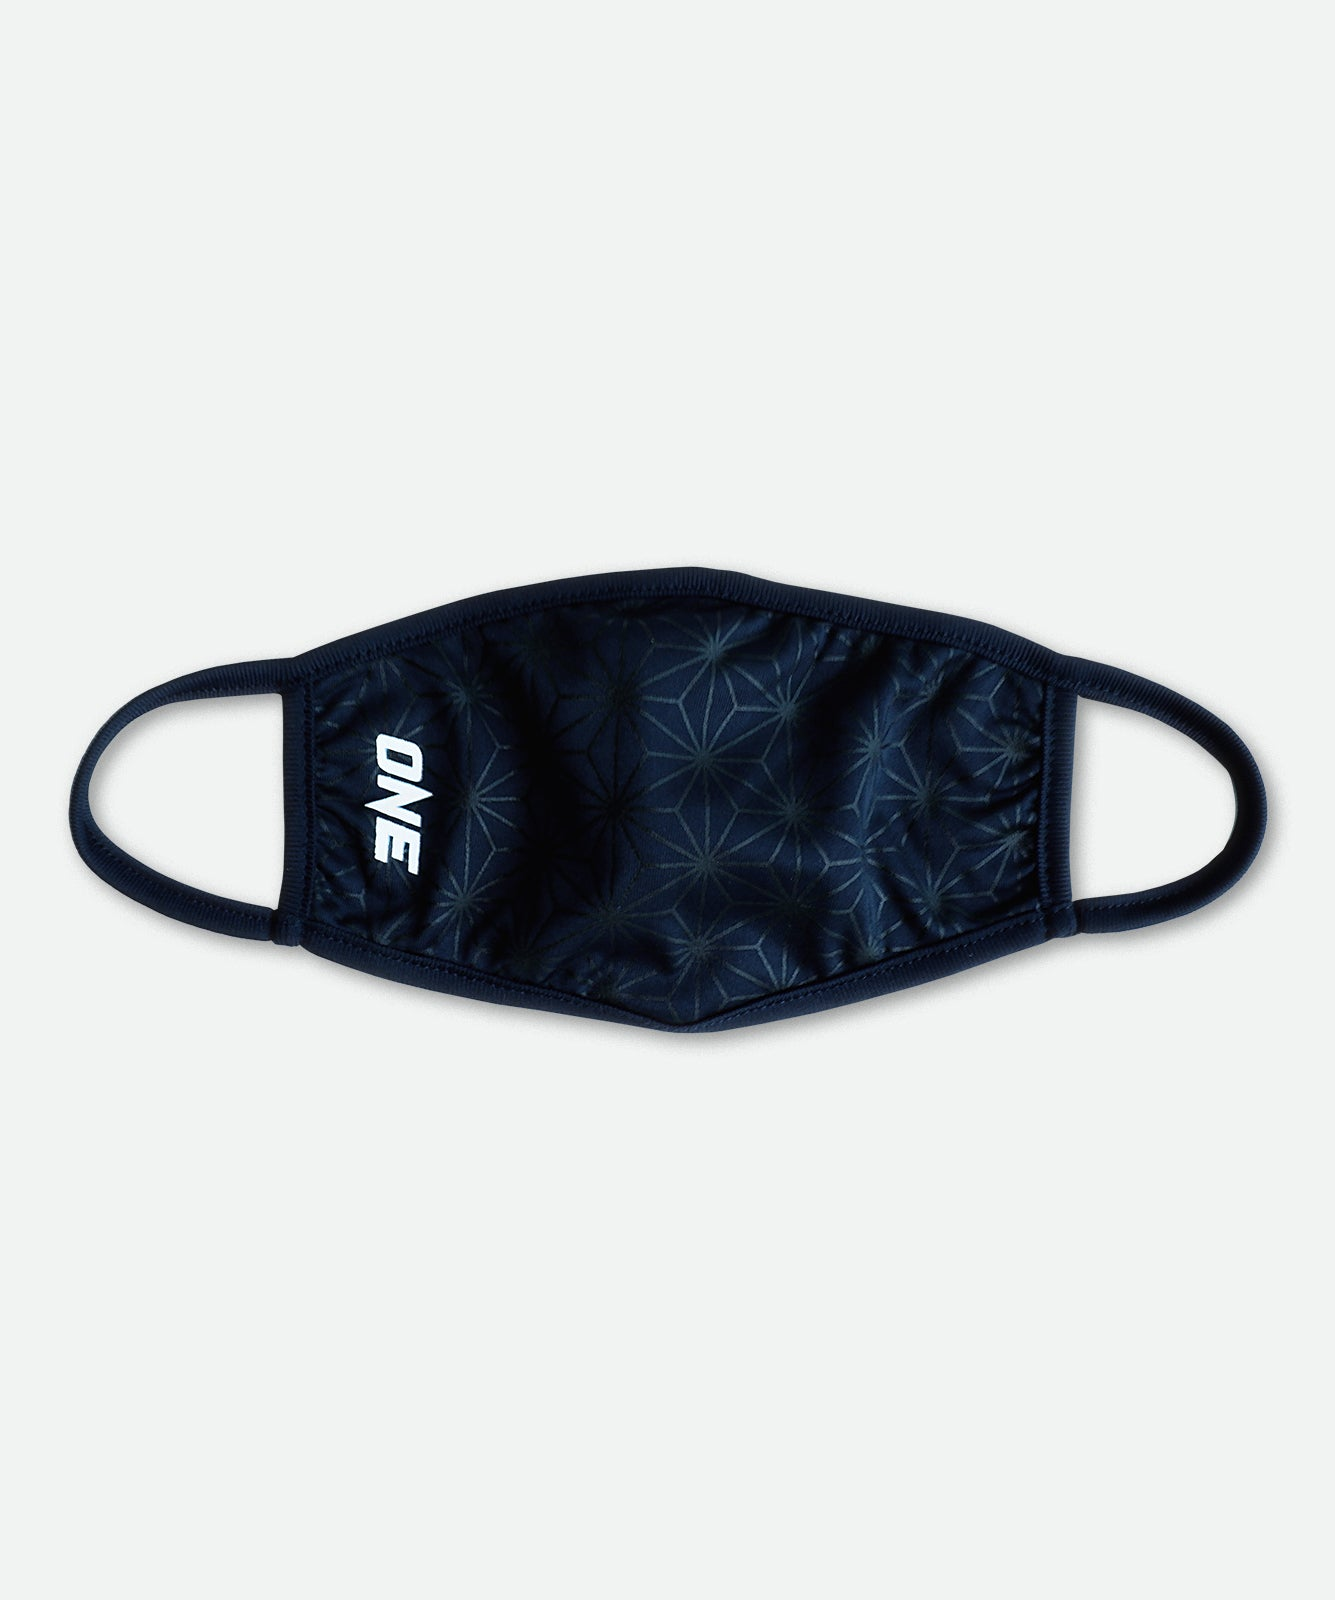 ONE Face Mask (Navy Geometric) - ONE.SHOP | The Official Online Shop of ONE Championship